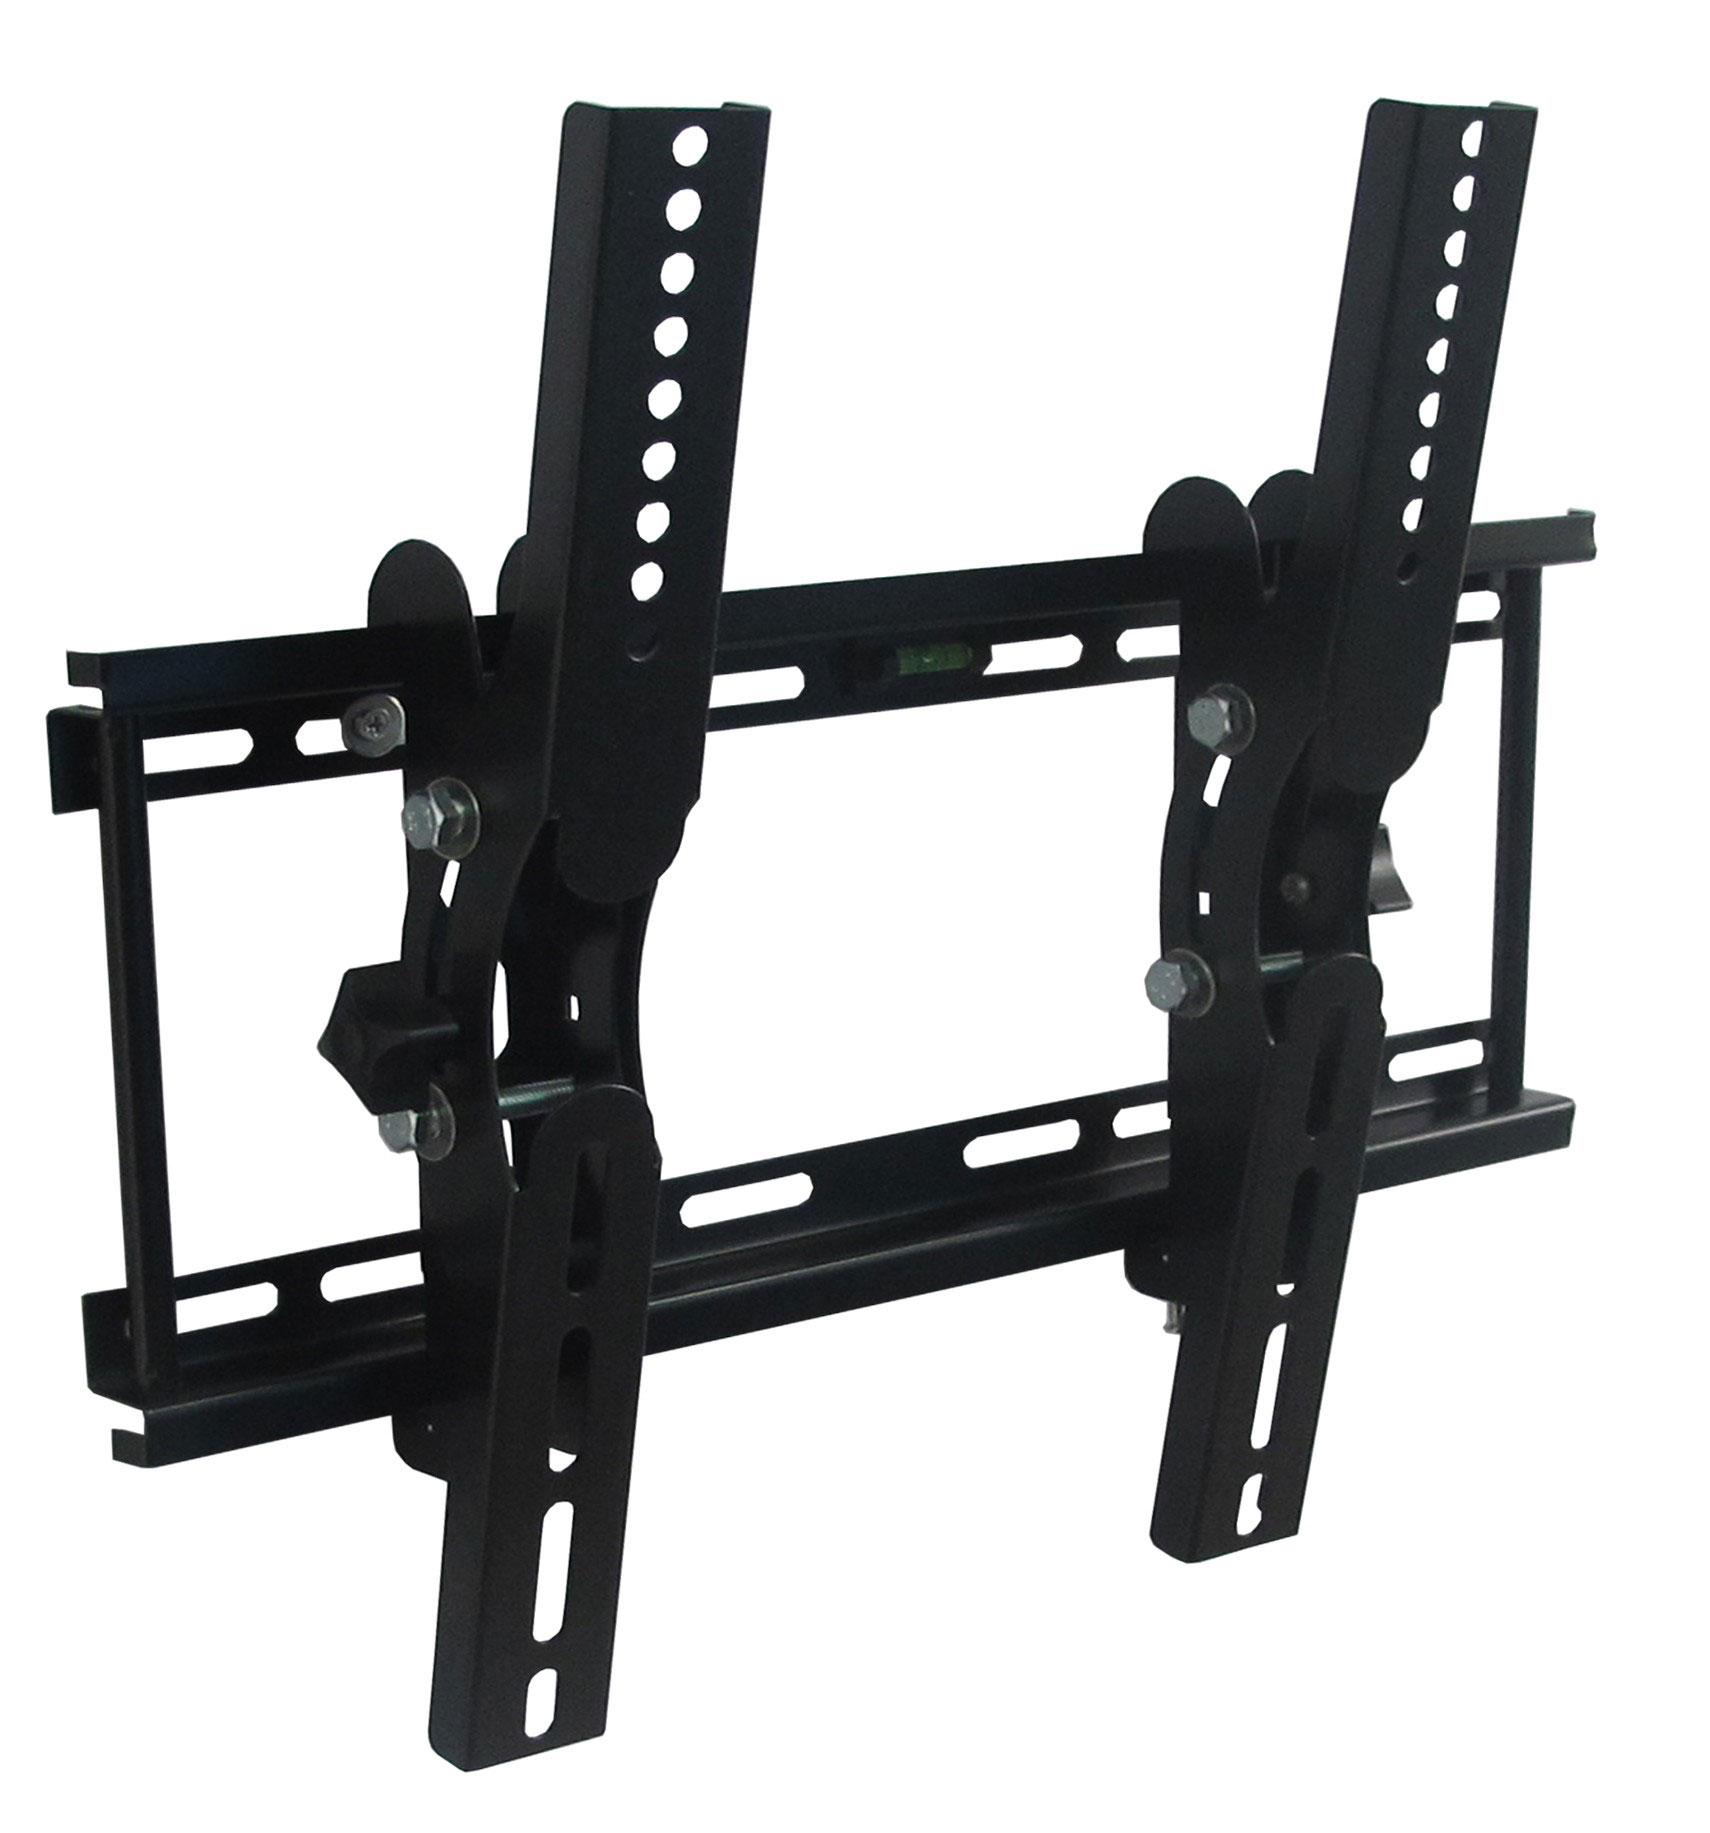 tv wall mount bracket slim tilt plasma led lcd samsung sony lg panasonic 22 65 ebay. Black Bedroom Furniture Sets. Home Design Ideas